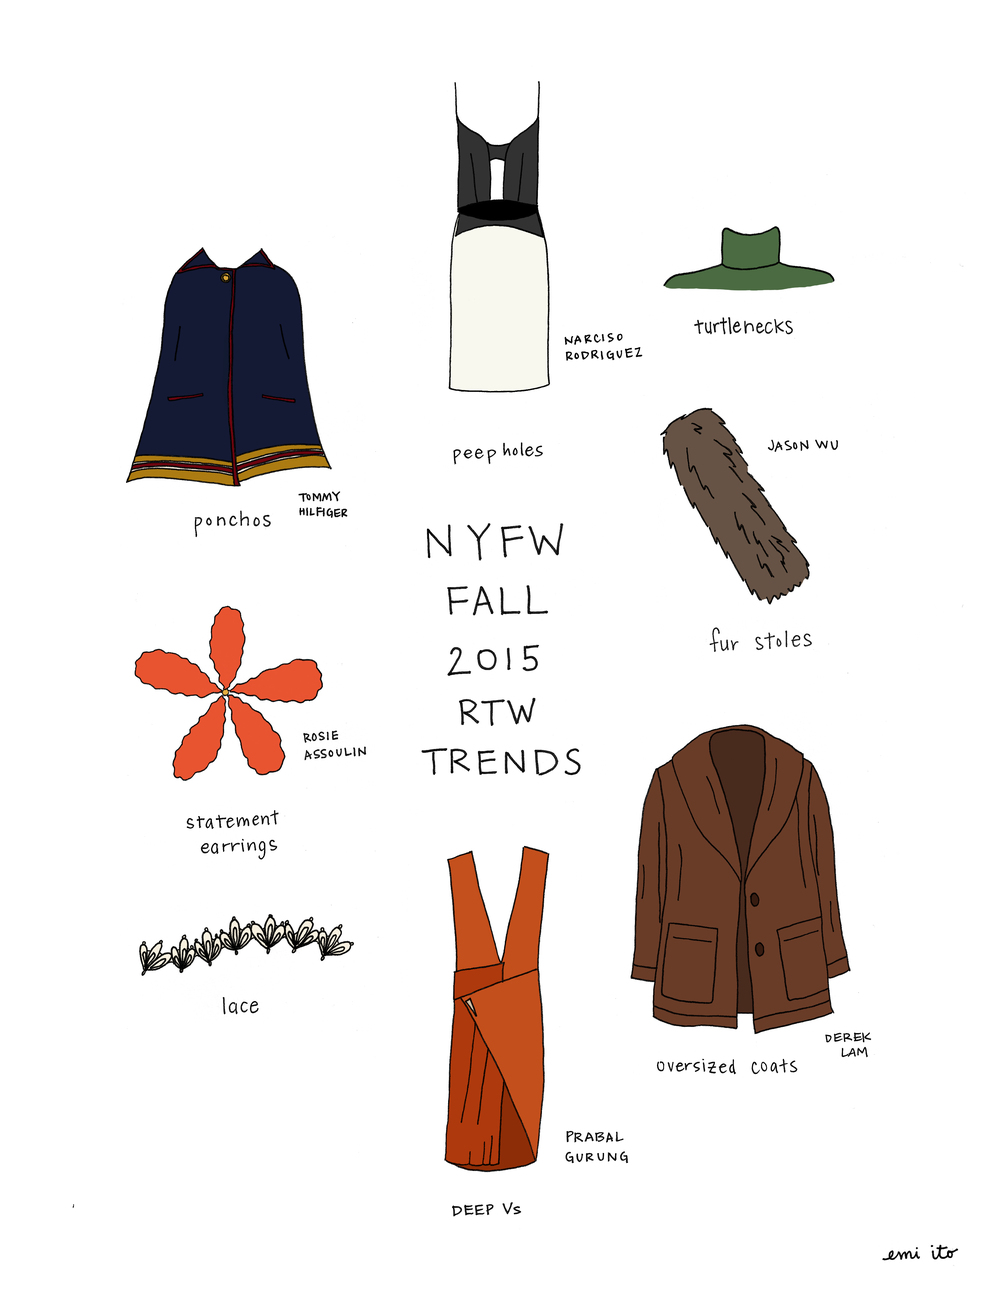 NYFW Fall 2015 RTW Trends - emi ito illustration